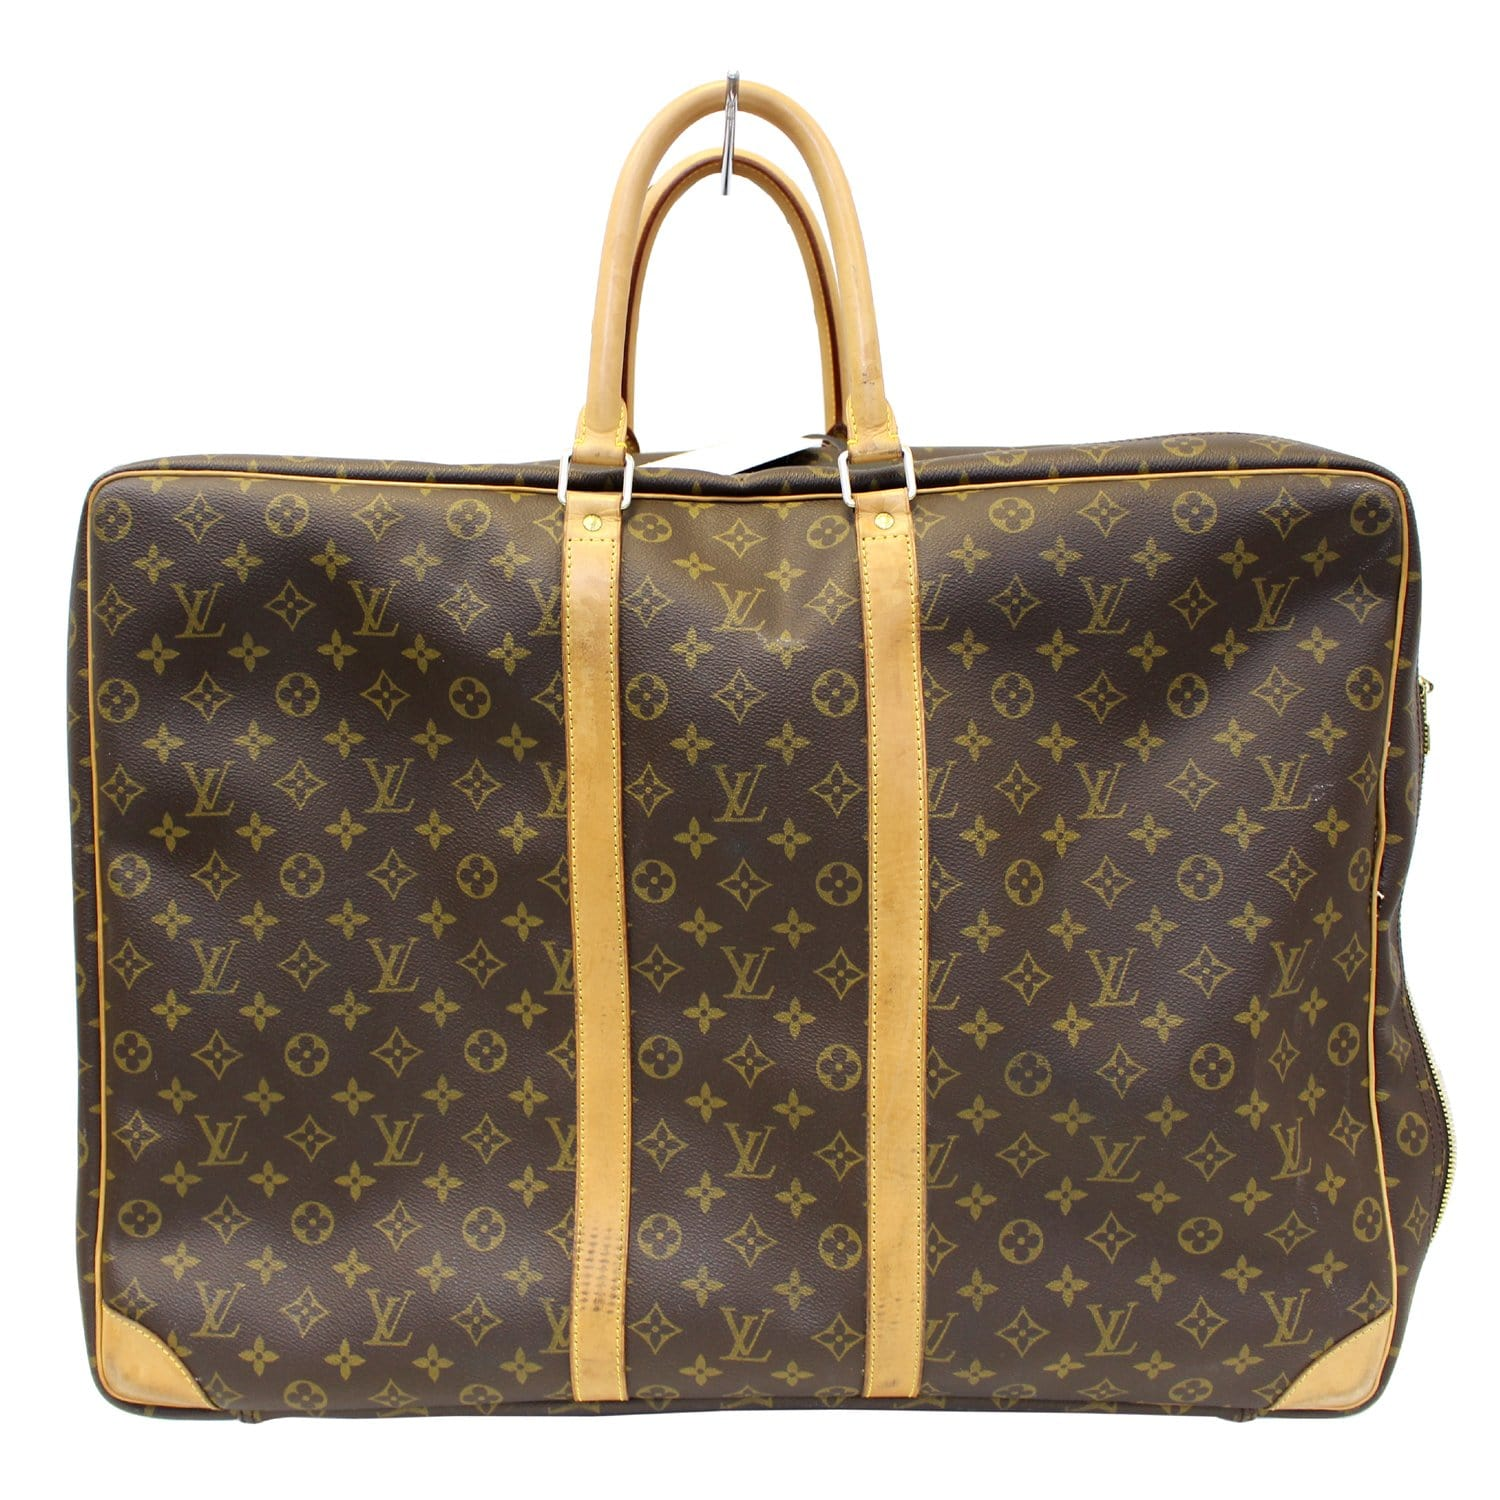 LOUIS VUITTON Sirius 55 Monogram Canvas Suitcase Travel Bag-US 756ca2feb3